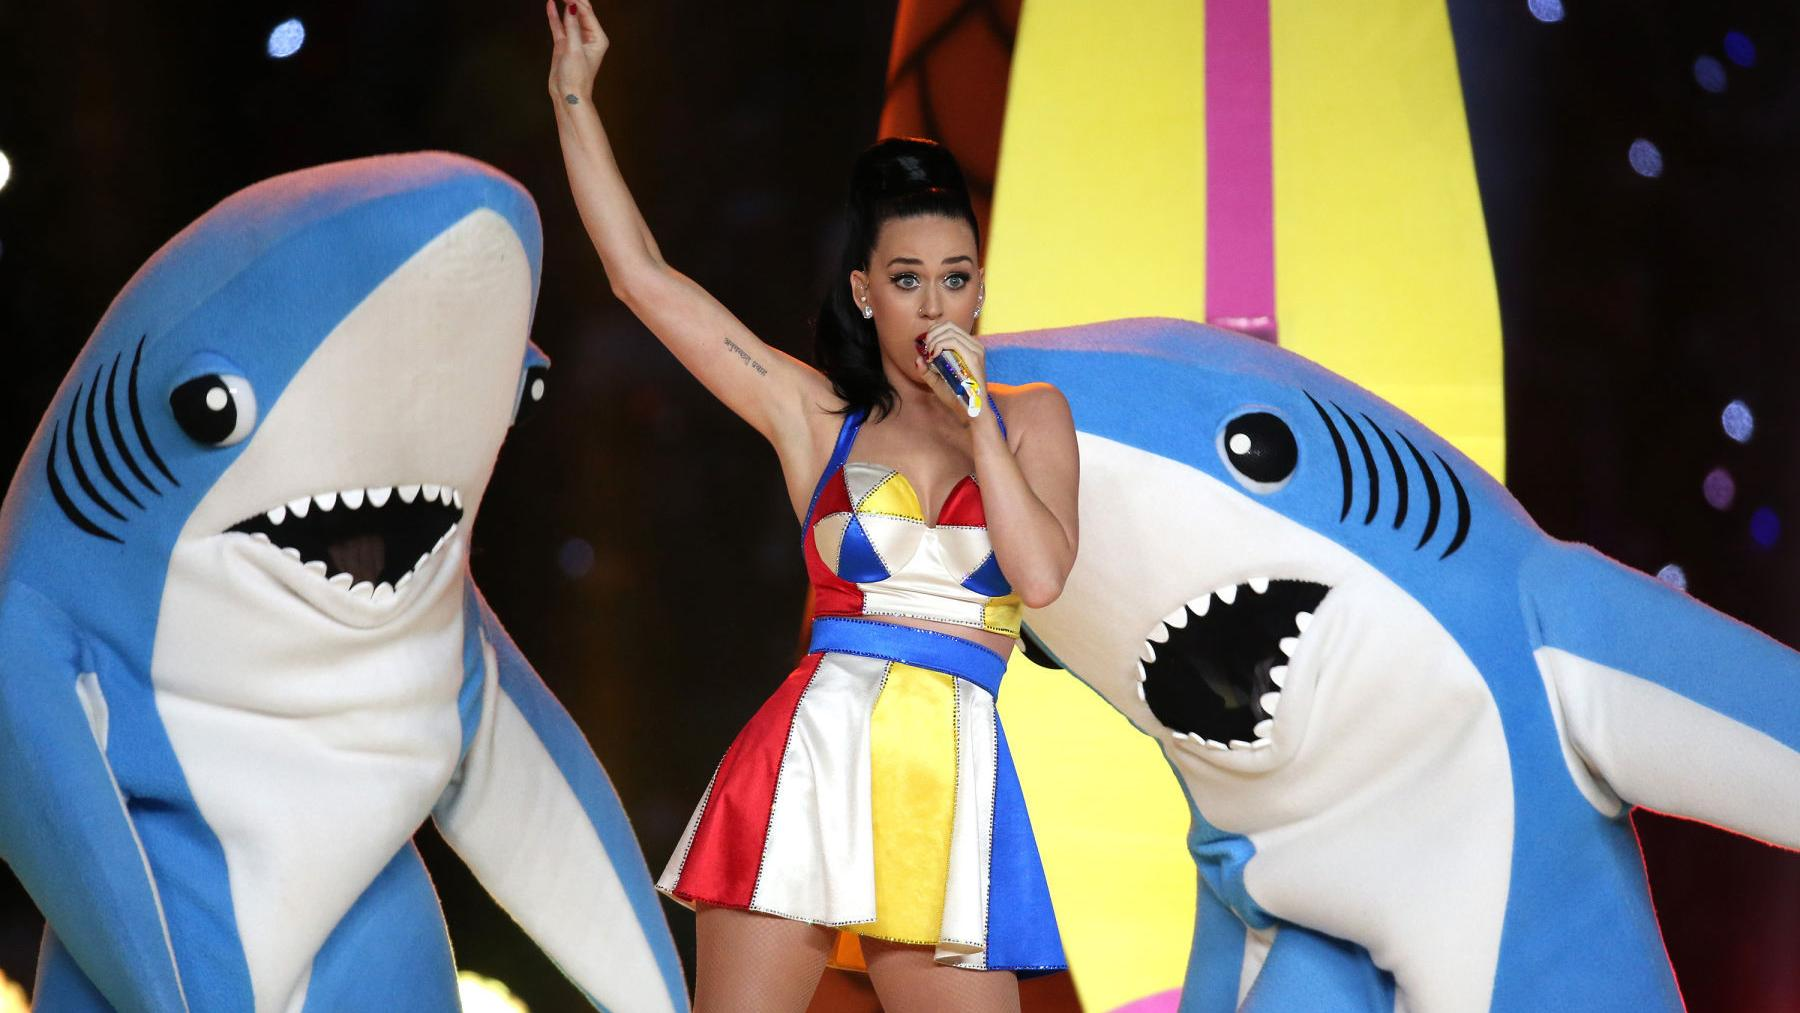 The worst Super Bowl halftime shows of all time